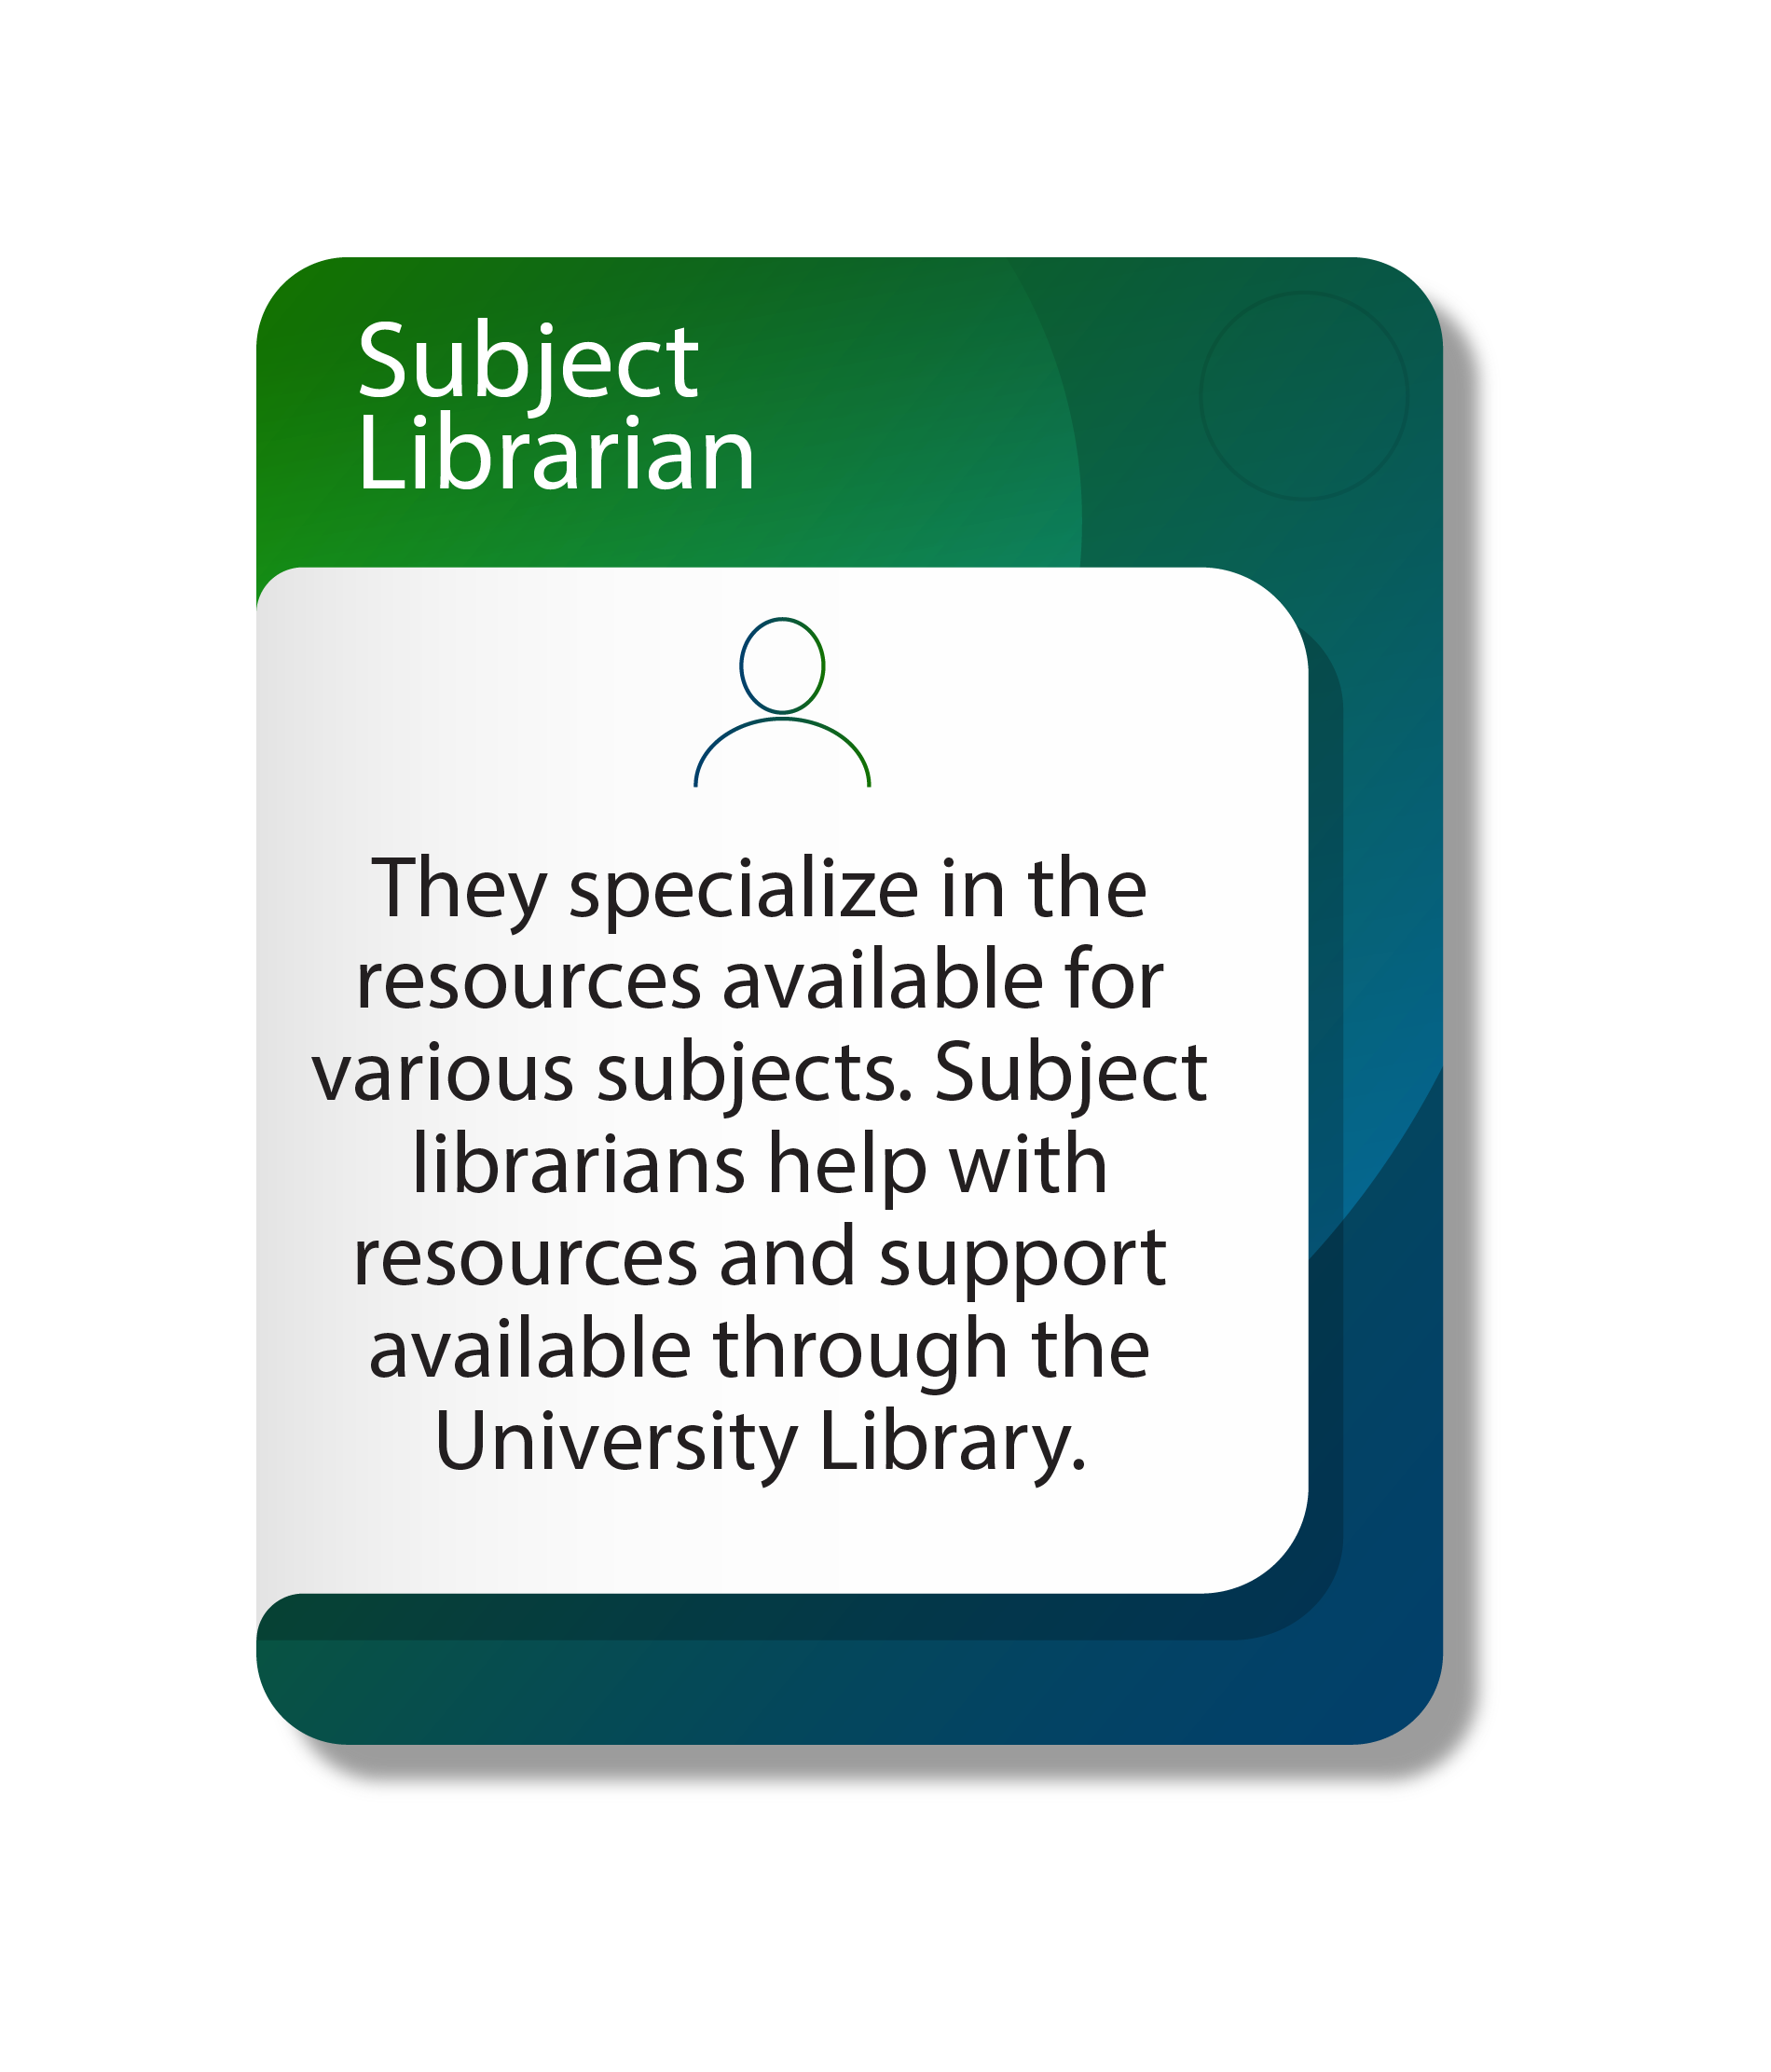 Subject Librarian, they specialize in the resources available for various subjects. Subject librarians help with resources and support available through the university library.